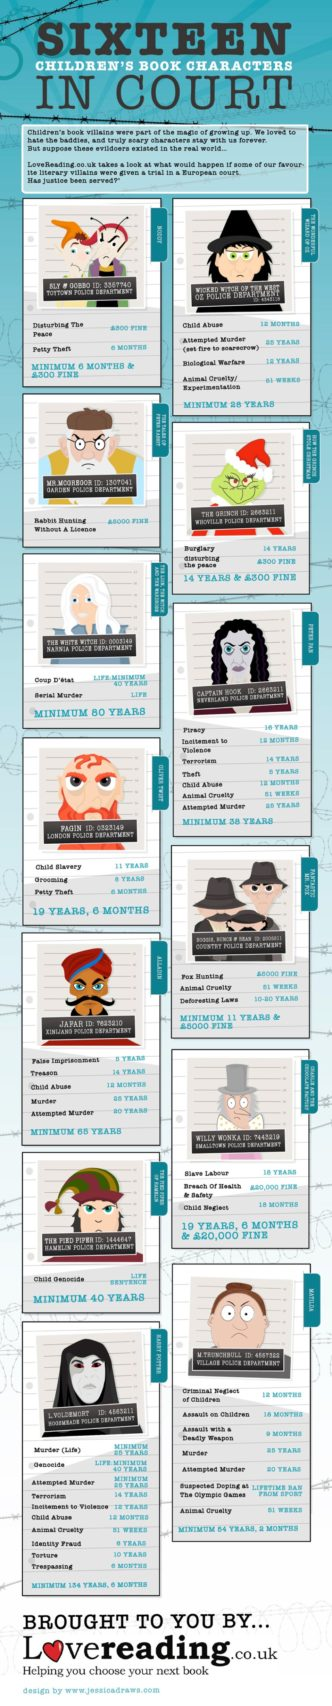 Children's book characters in court #infographic